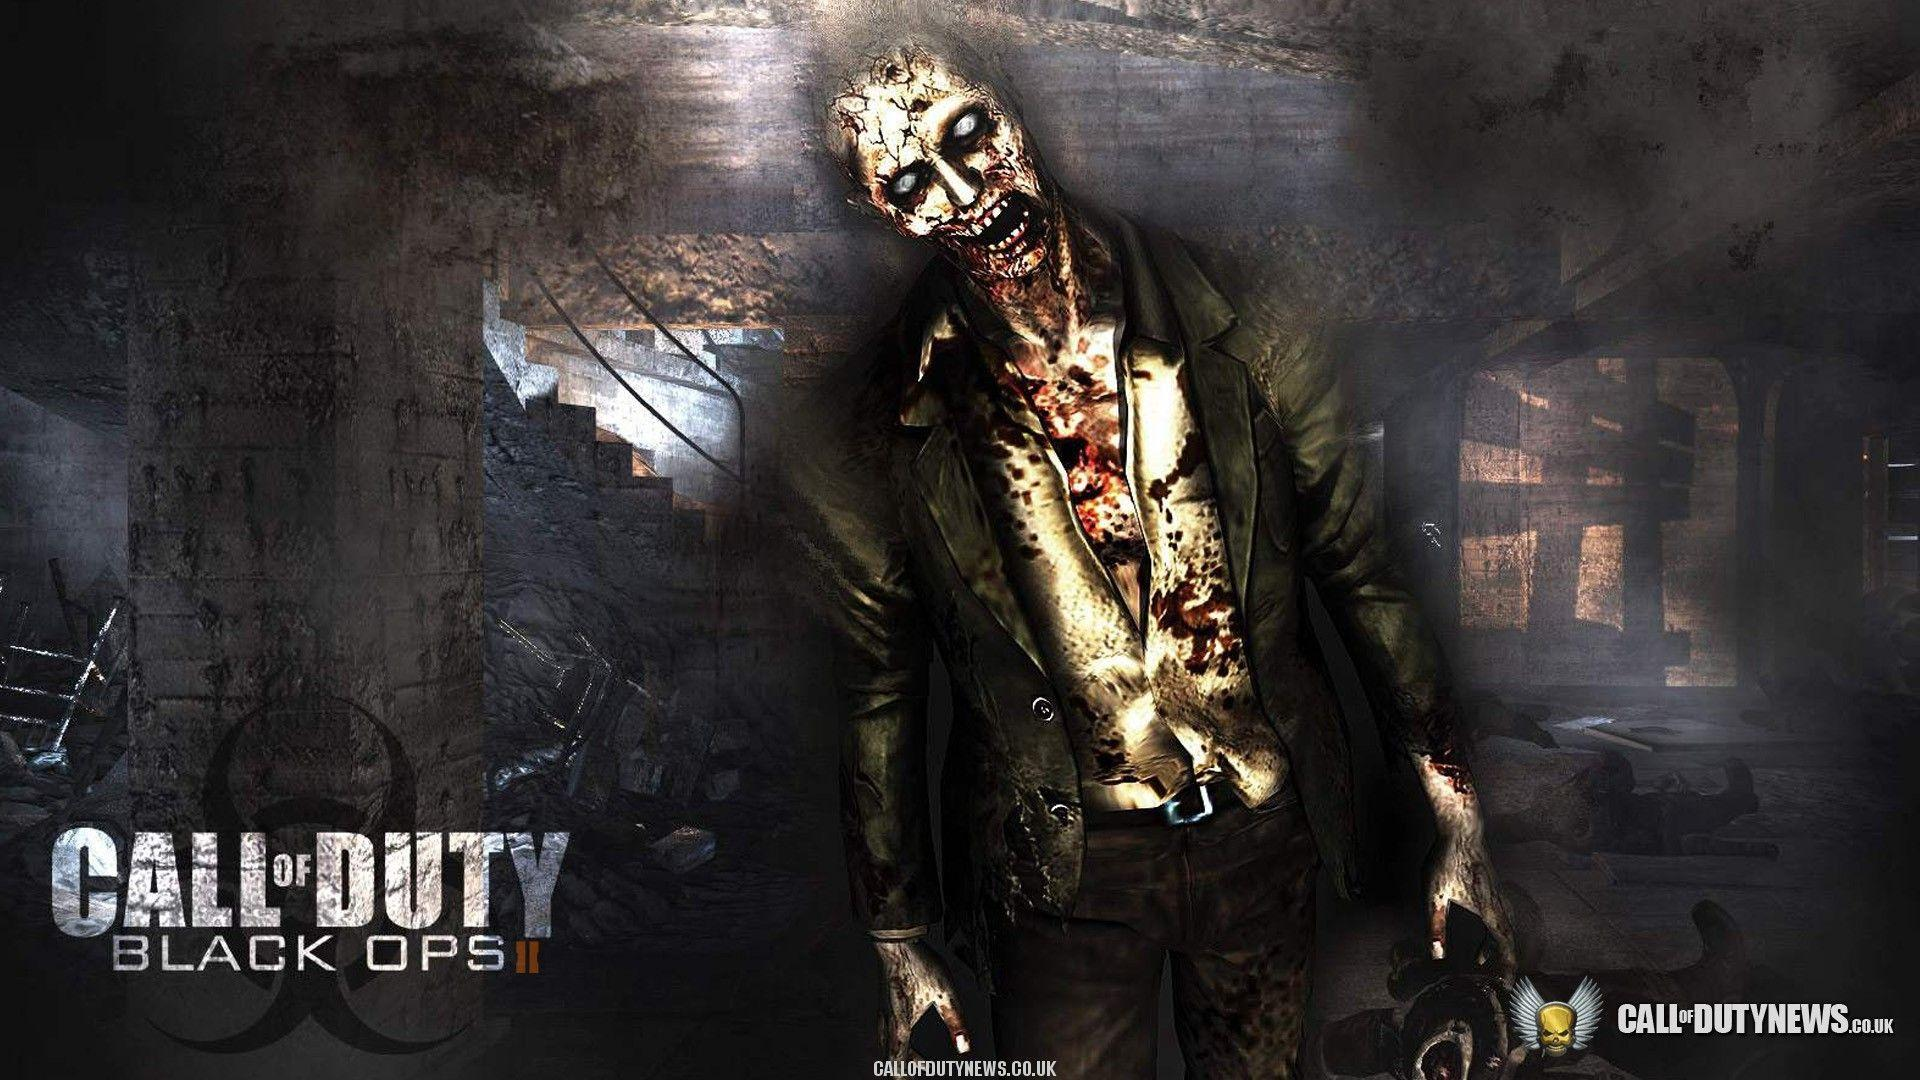 Black Ops 2 Wallpaper 71 Zombie Call Of Duty Blog